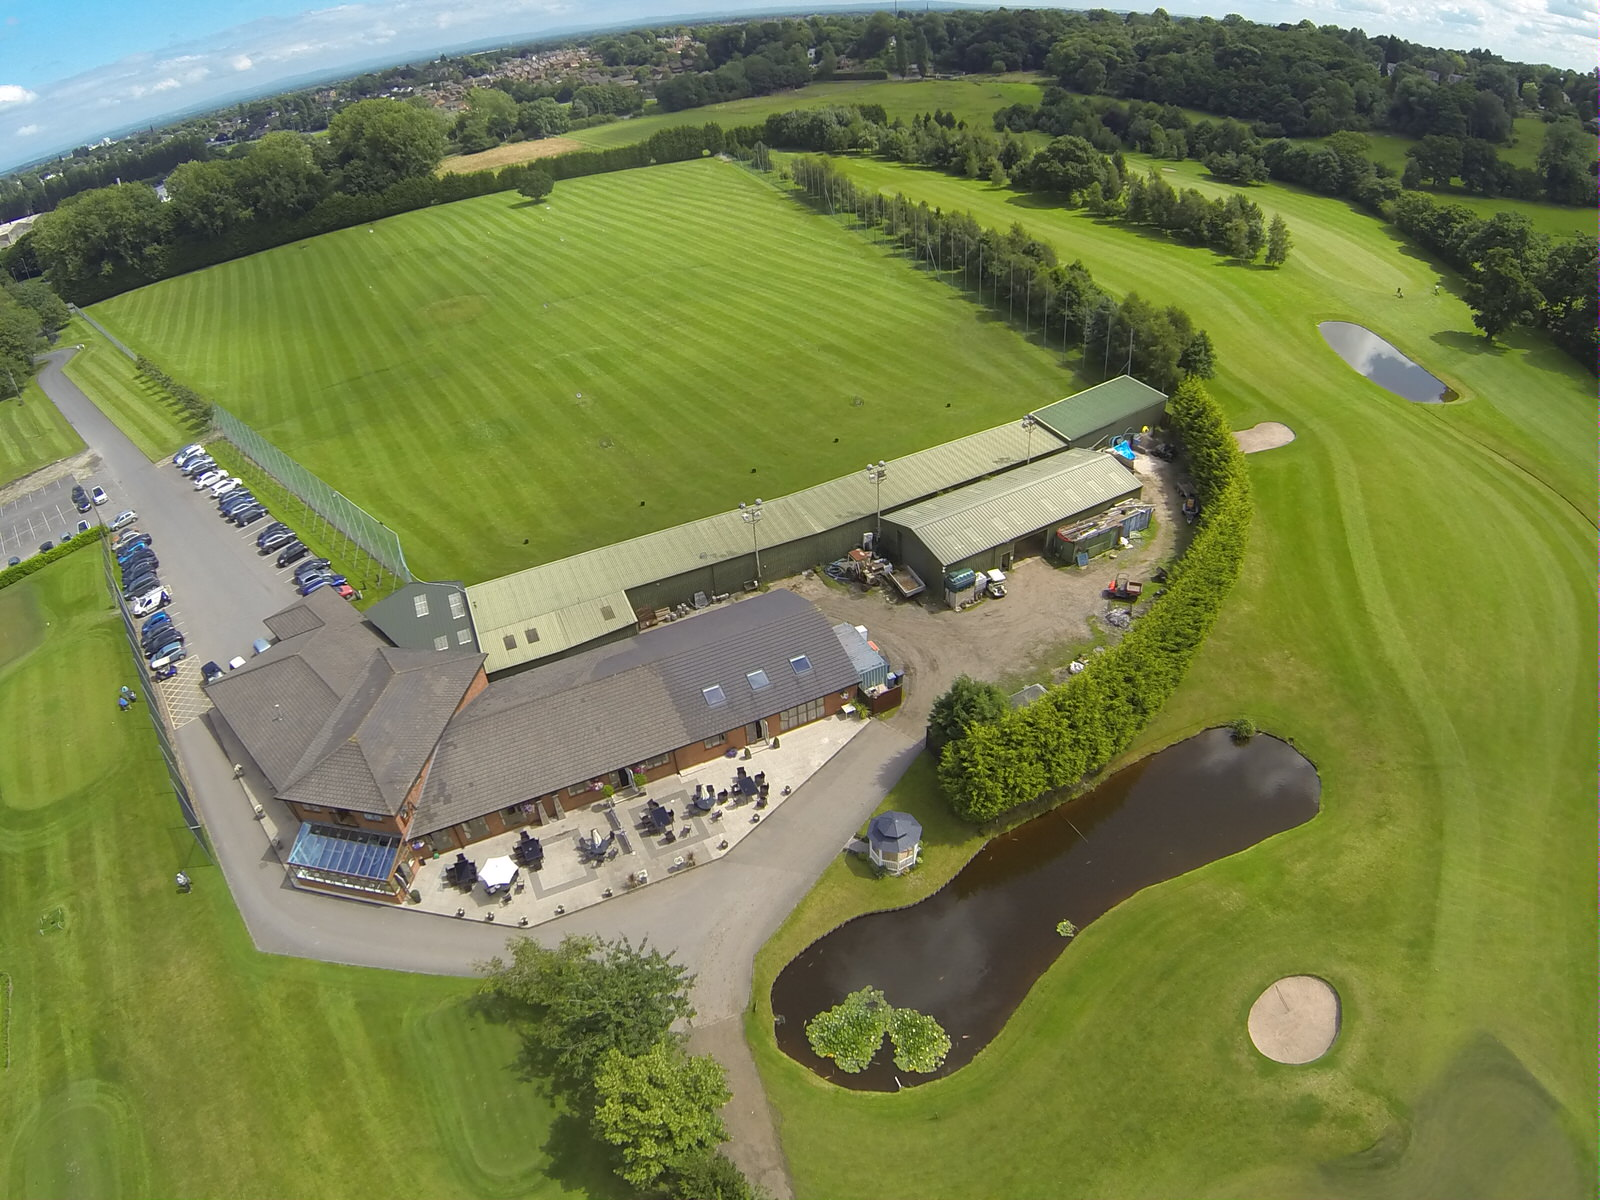 Aerial view of driving range